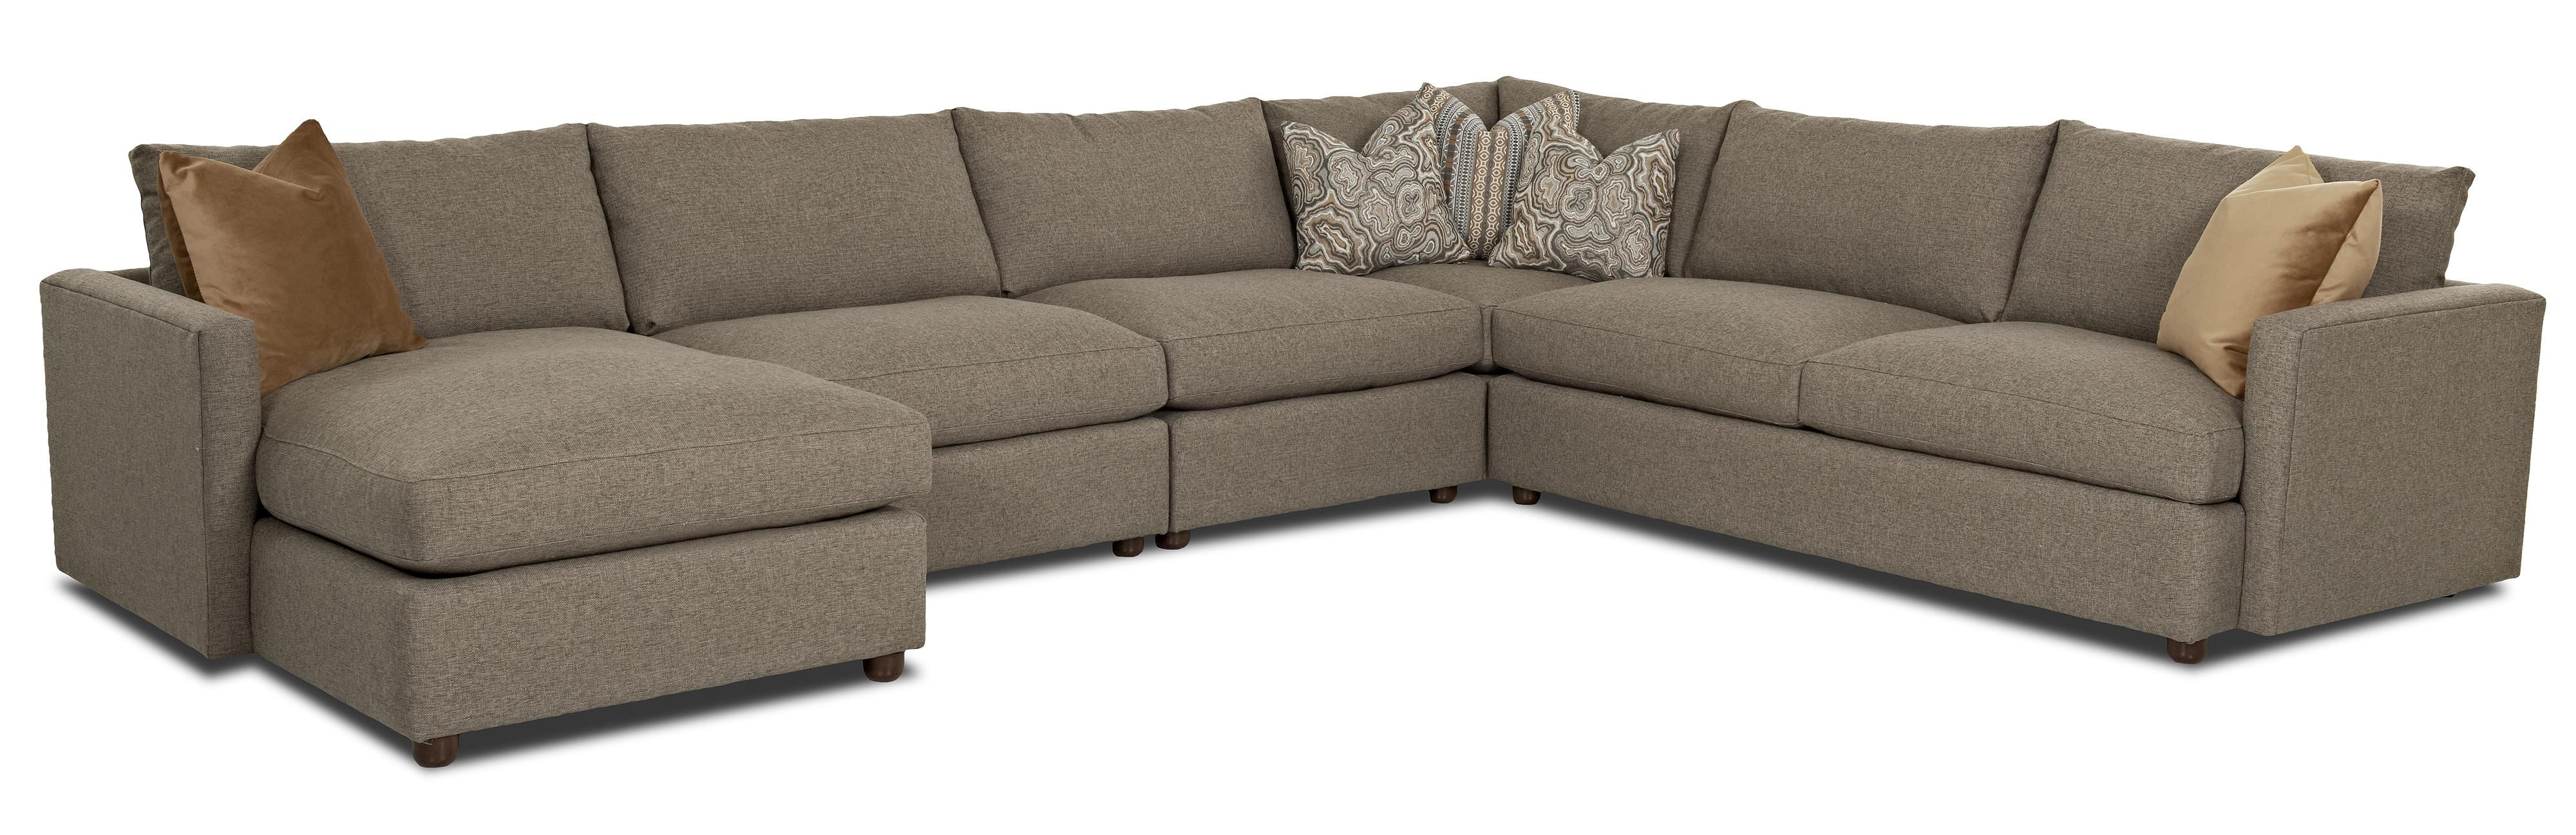 Flexsteel Furniture Extraordinary Construction and Quality sofa